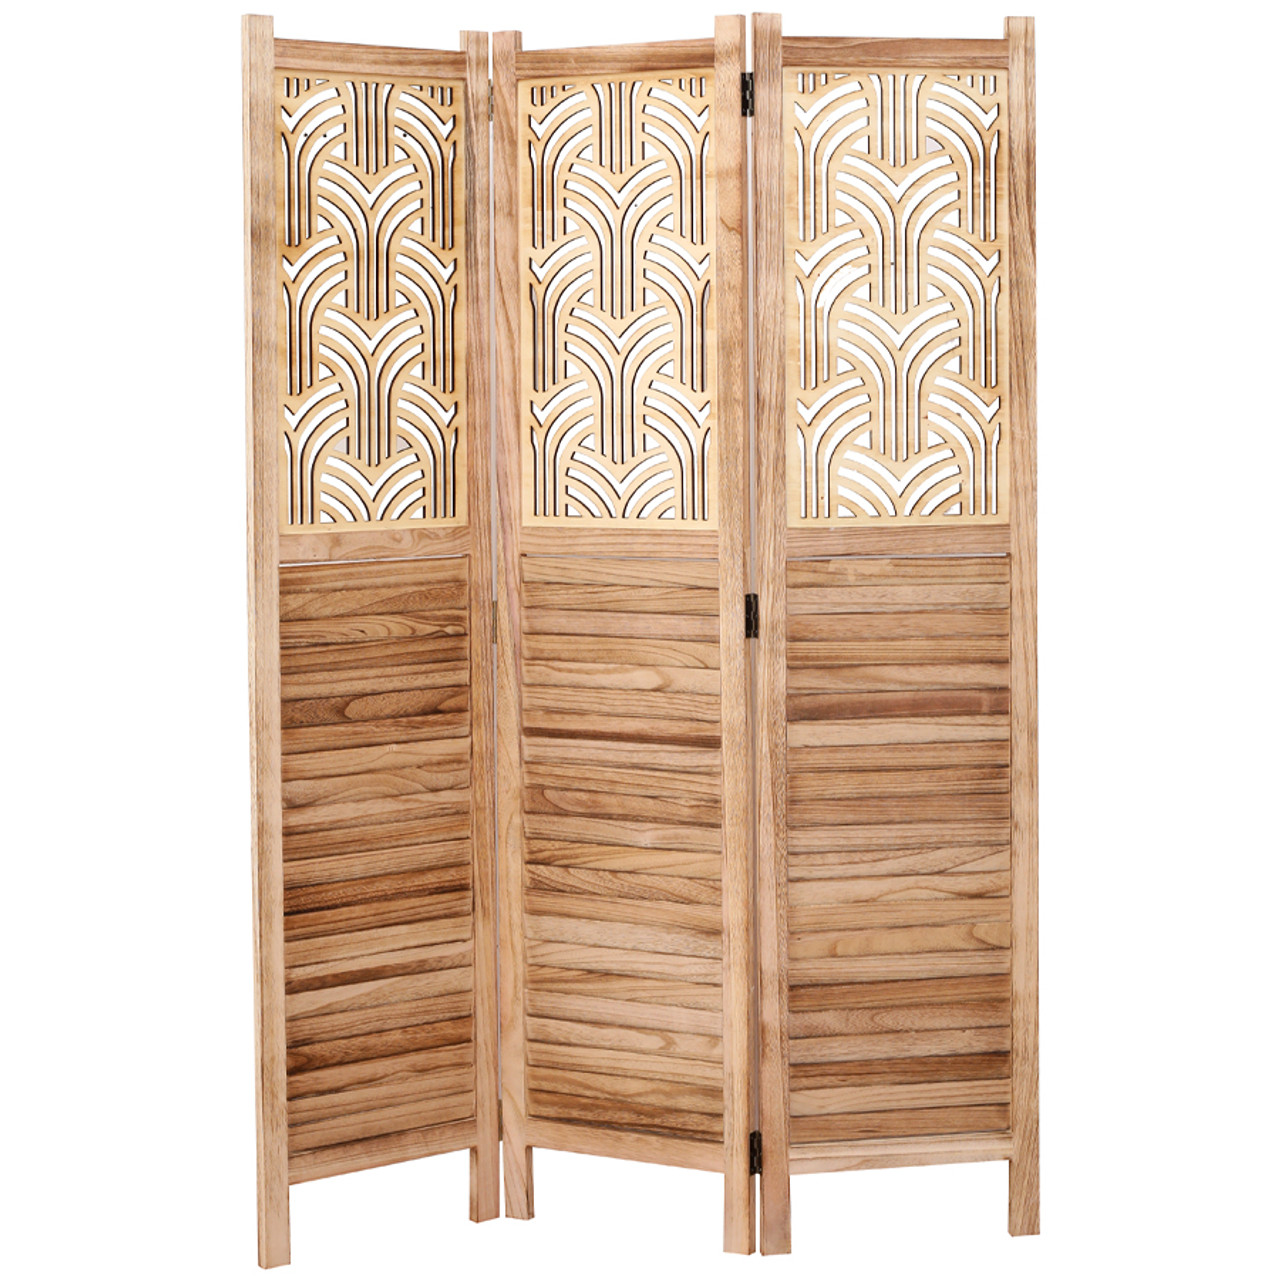 3 Panel Rustic solid wood with decorative detail room divider in USA, California, New York, New York City, Los Angeles, San Francisco, Pennsylvania, Washington DC, Virginia, Maryland